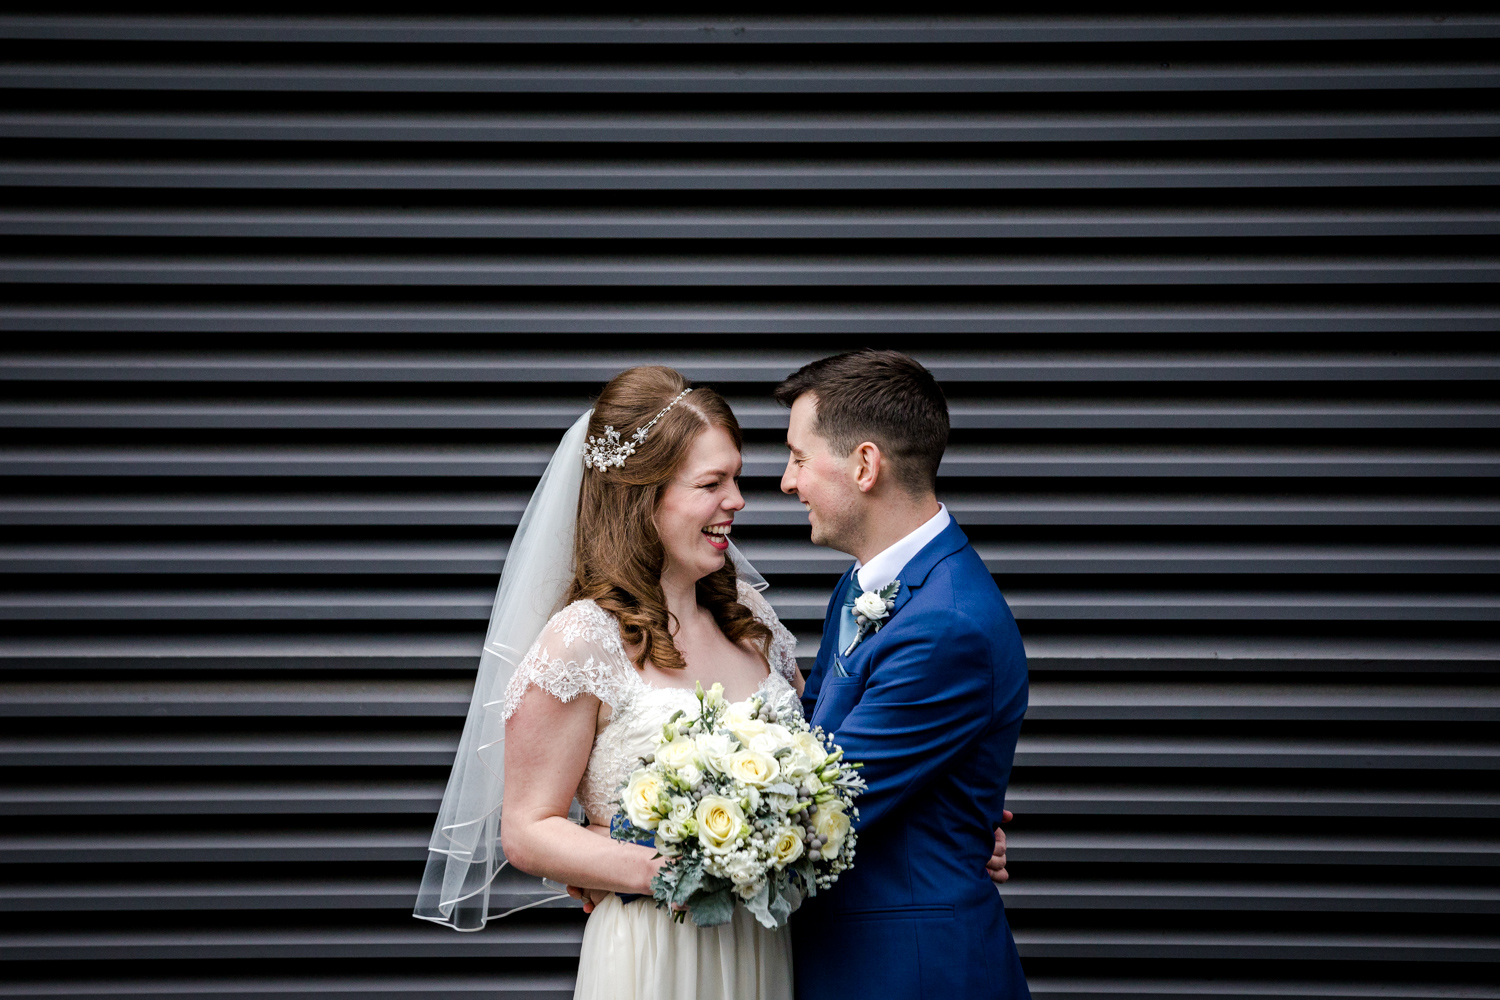 The bride and groom outside great John street hotel